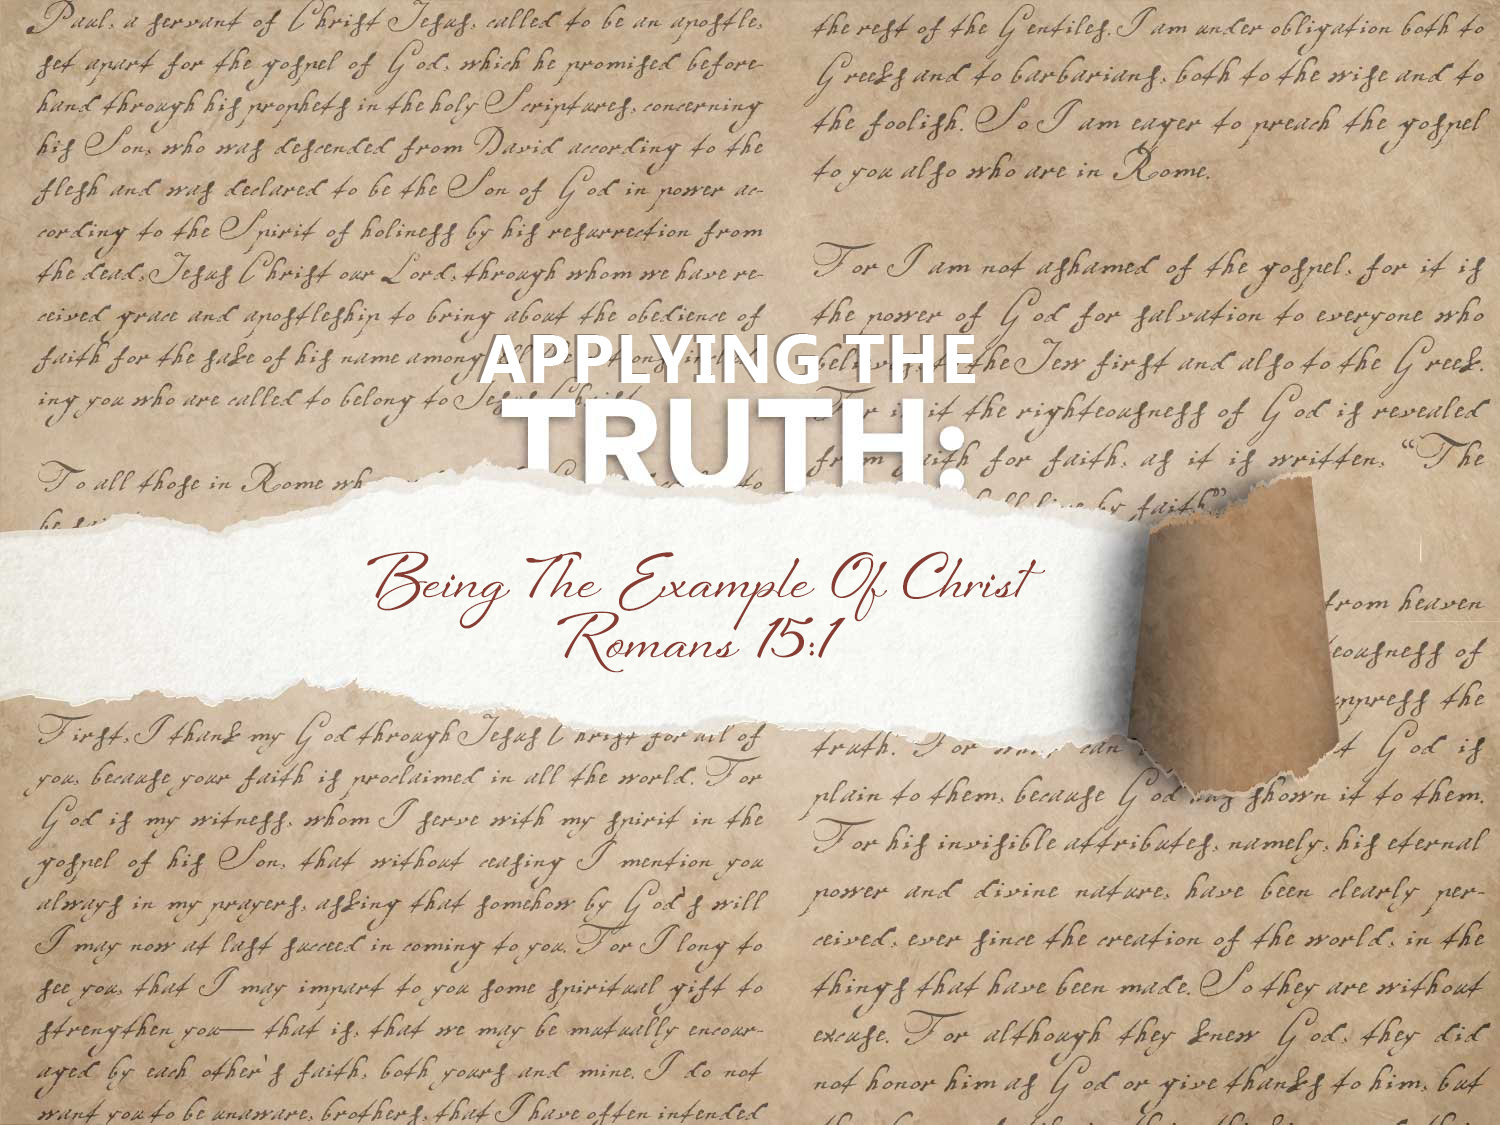 Romans 15 v 1-3 Being The Example Of Christ